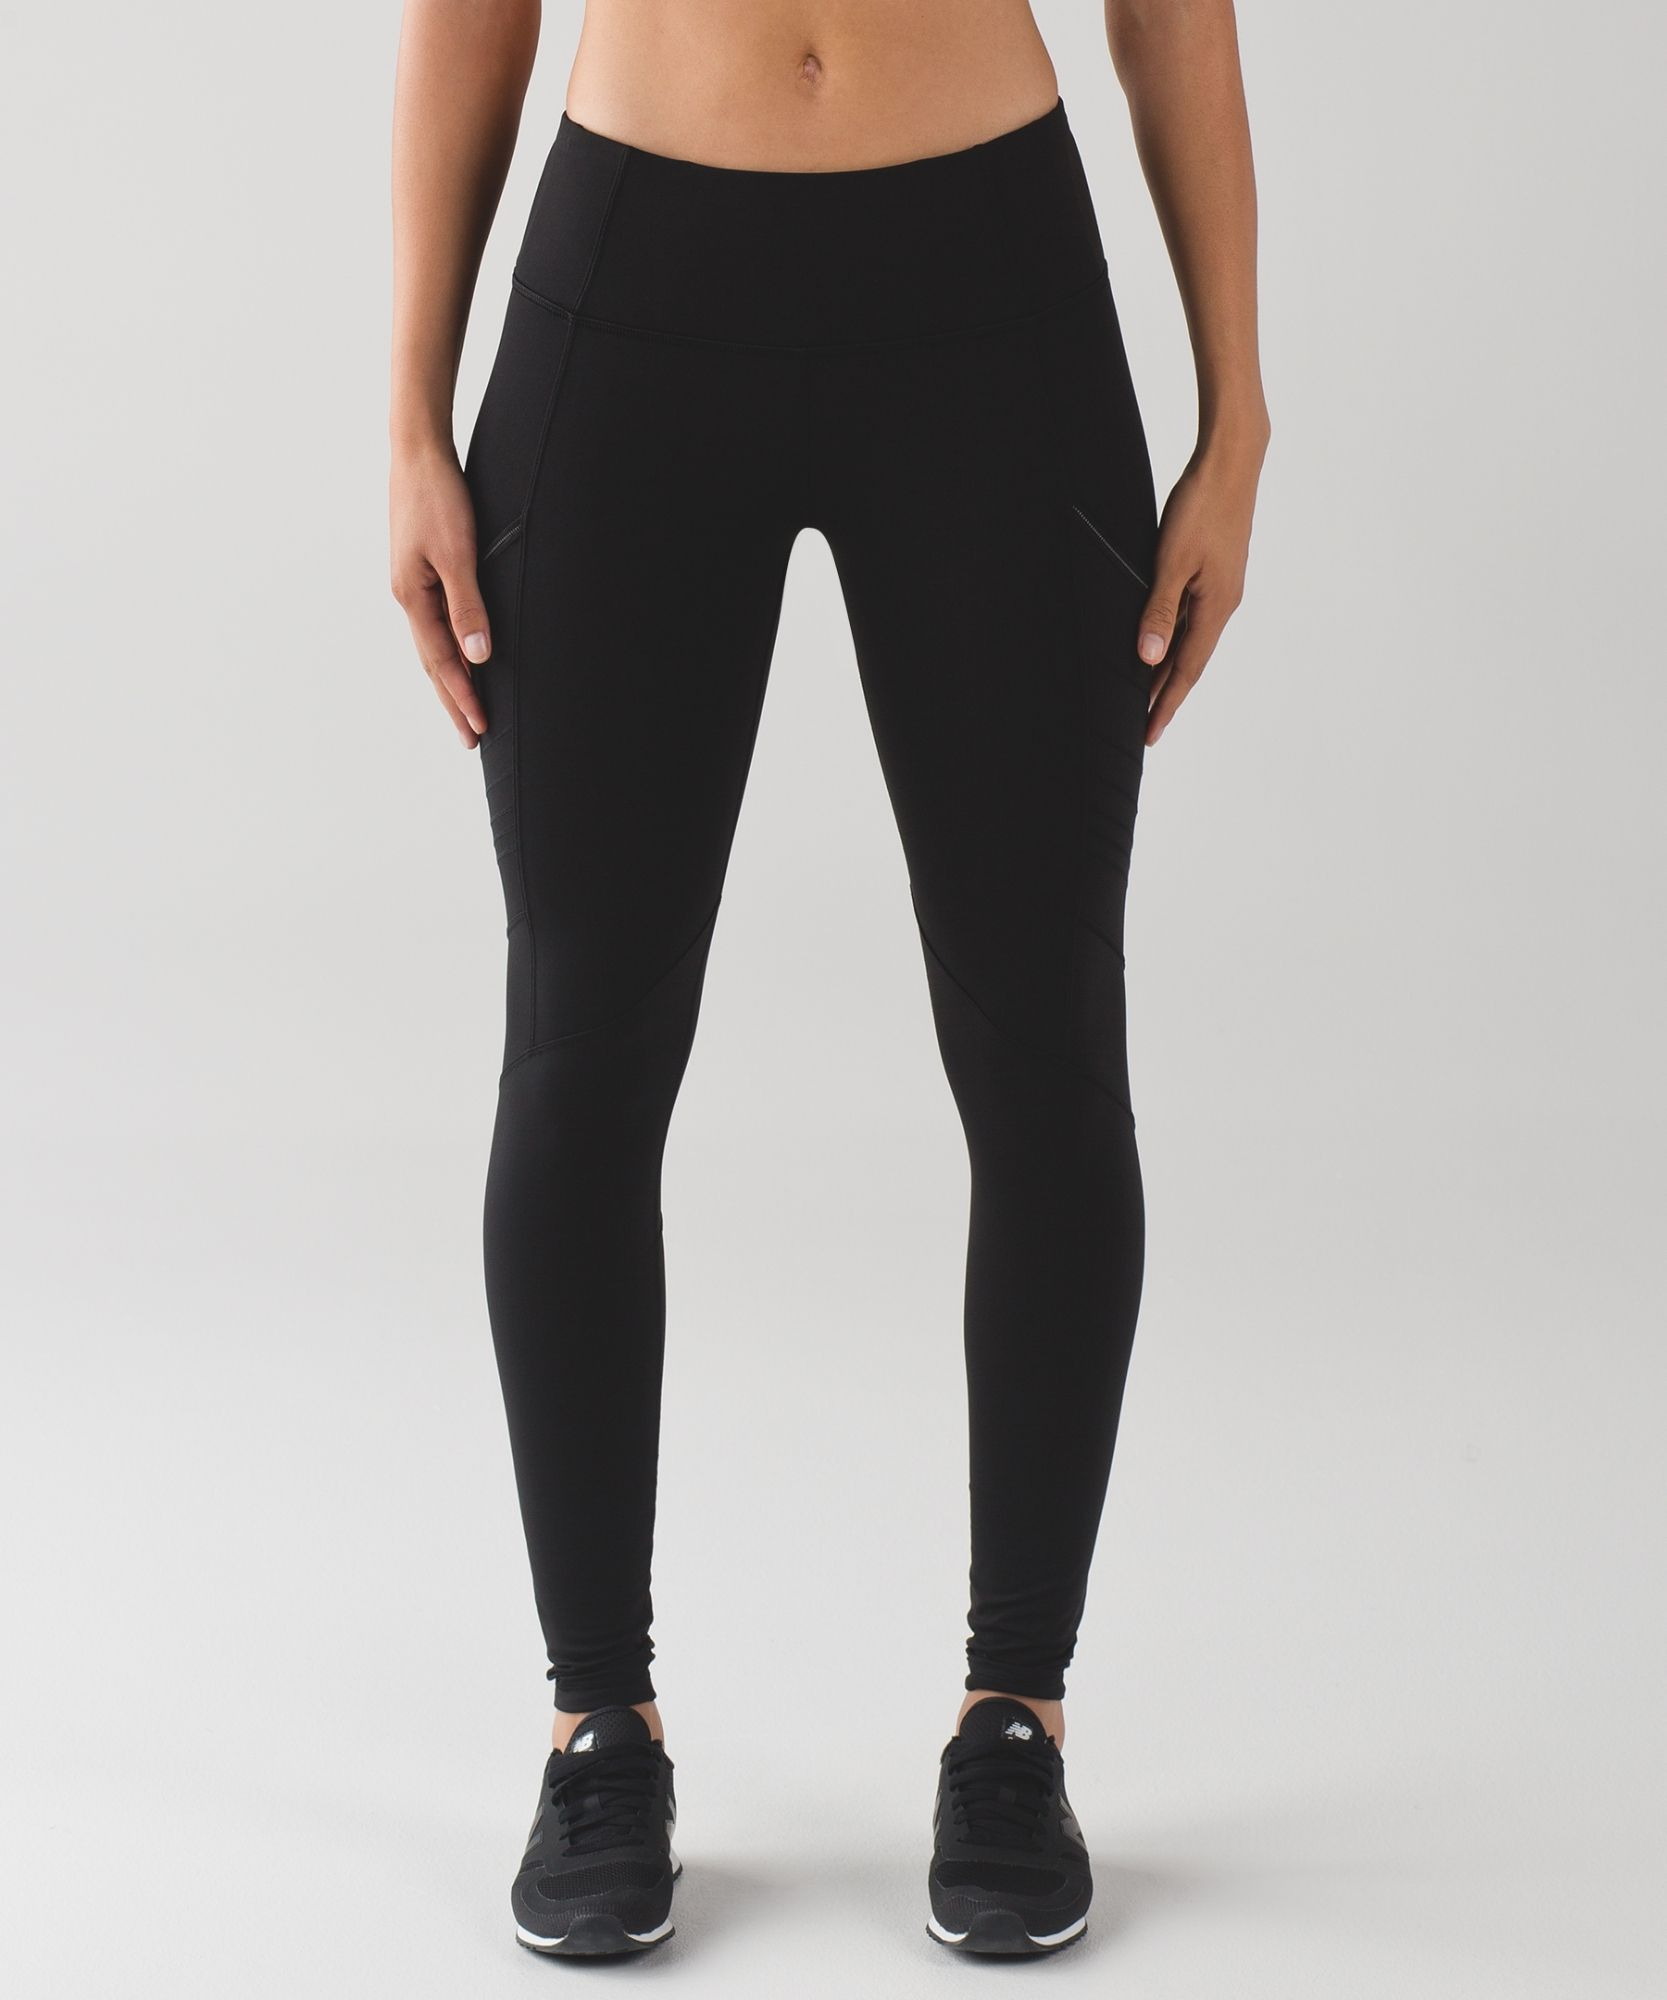 f5013e3b09 LULULEMON Fresh Tracks Tight (size 4) These tights were designed with  sweat-wicking Tech Fleece fabric, brushed on the inside for warmth without  weight to ...